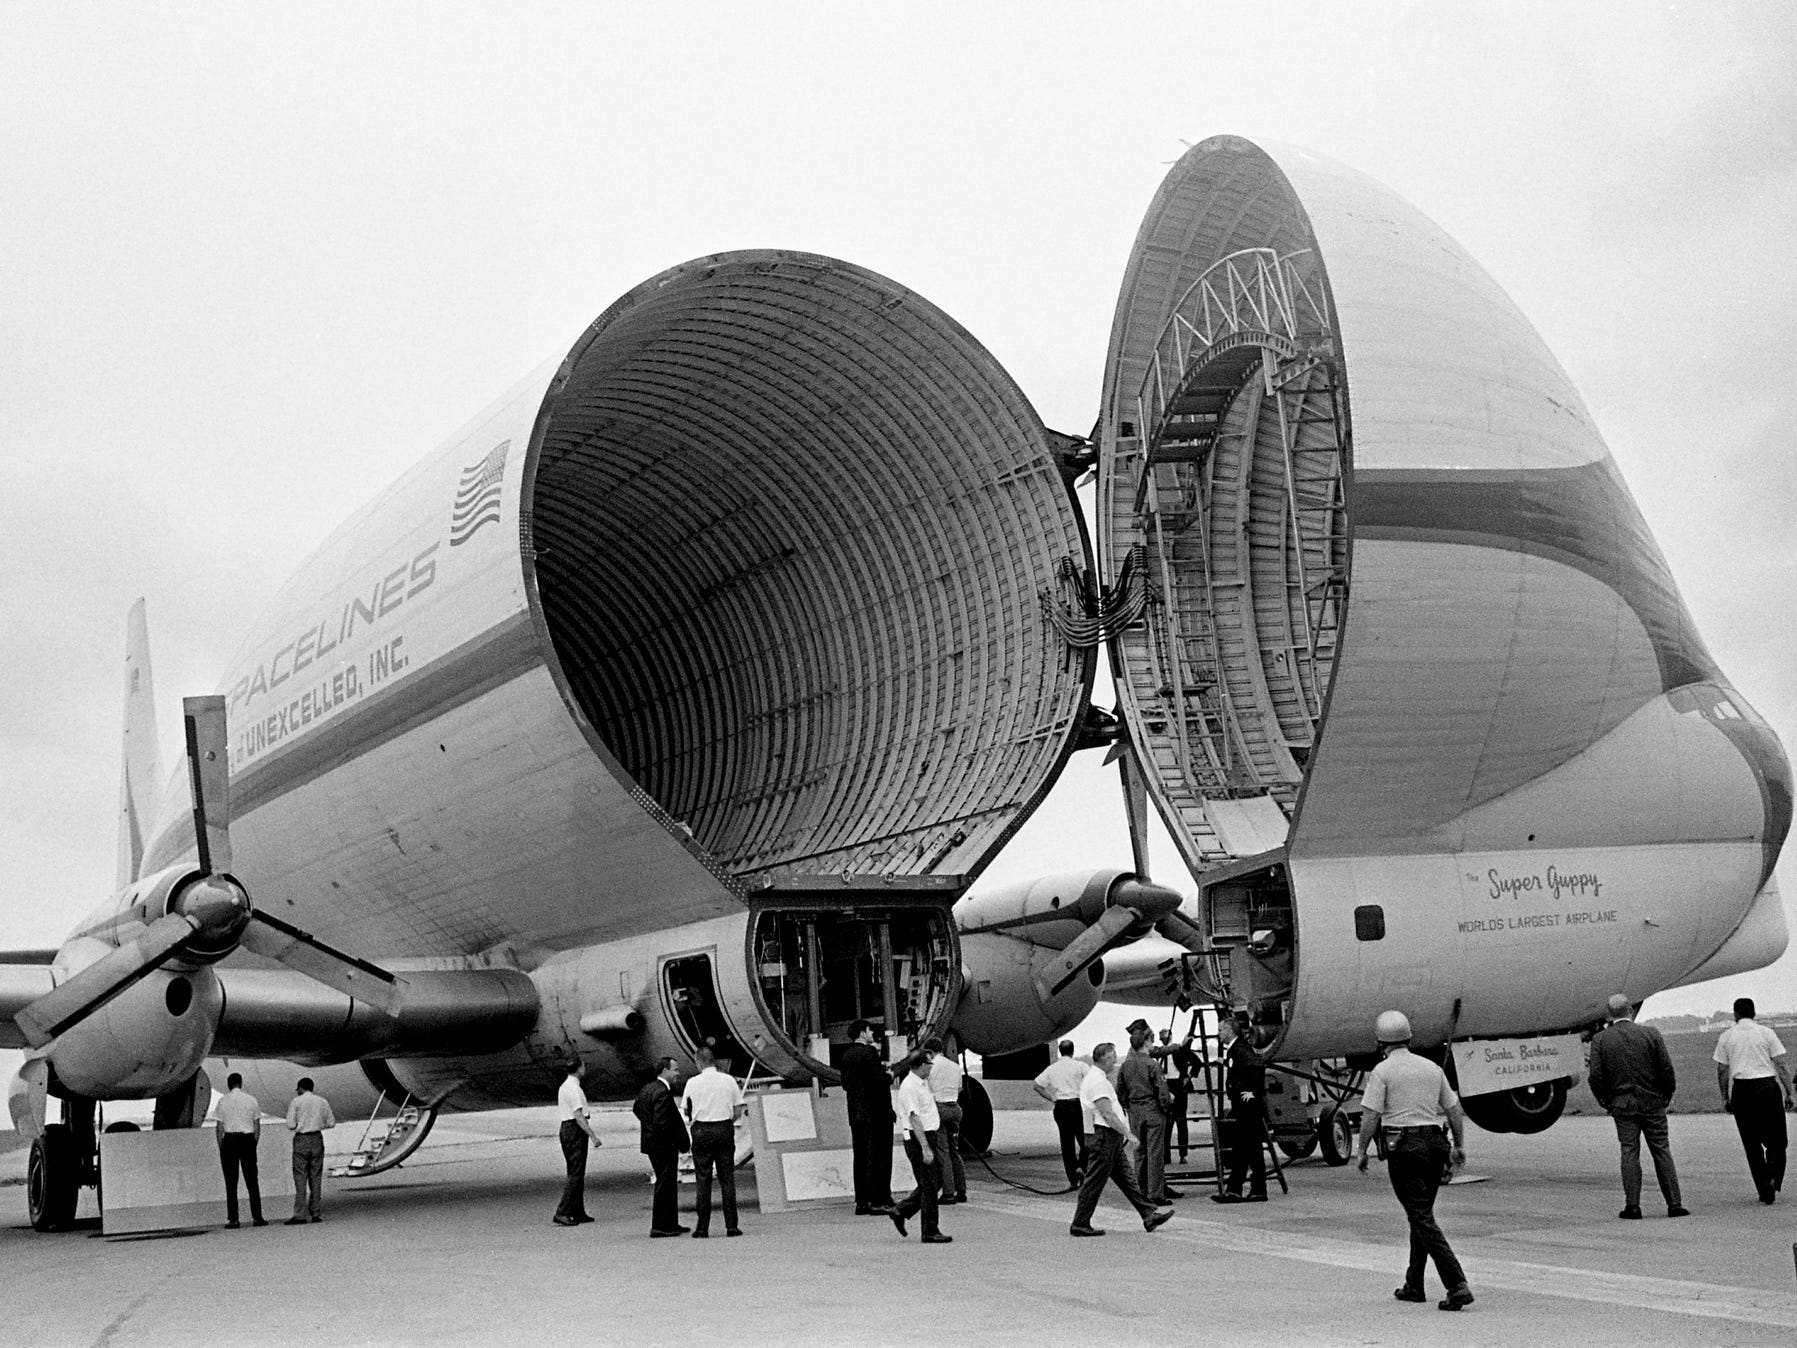 The Super Guppy, with its cavernous cargo compartment open, visits the Avco Aerostructures plant at Nashville Airport on Sept. 25, 1968. The plane was in town to convince Avco officials that it can do the job of transporting the wings of the giant Lockheed L1011 that they make to California for assembly.